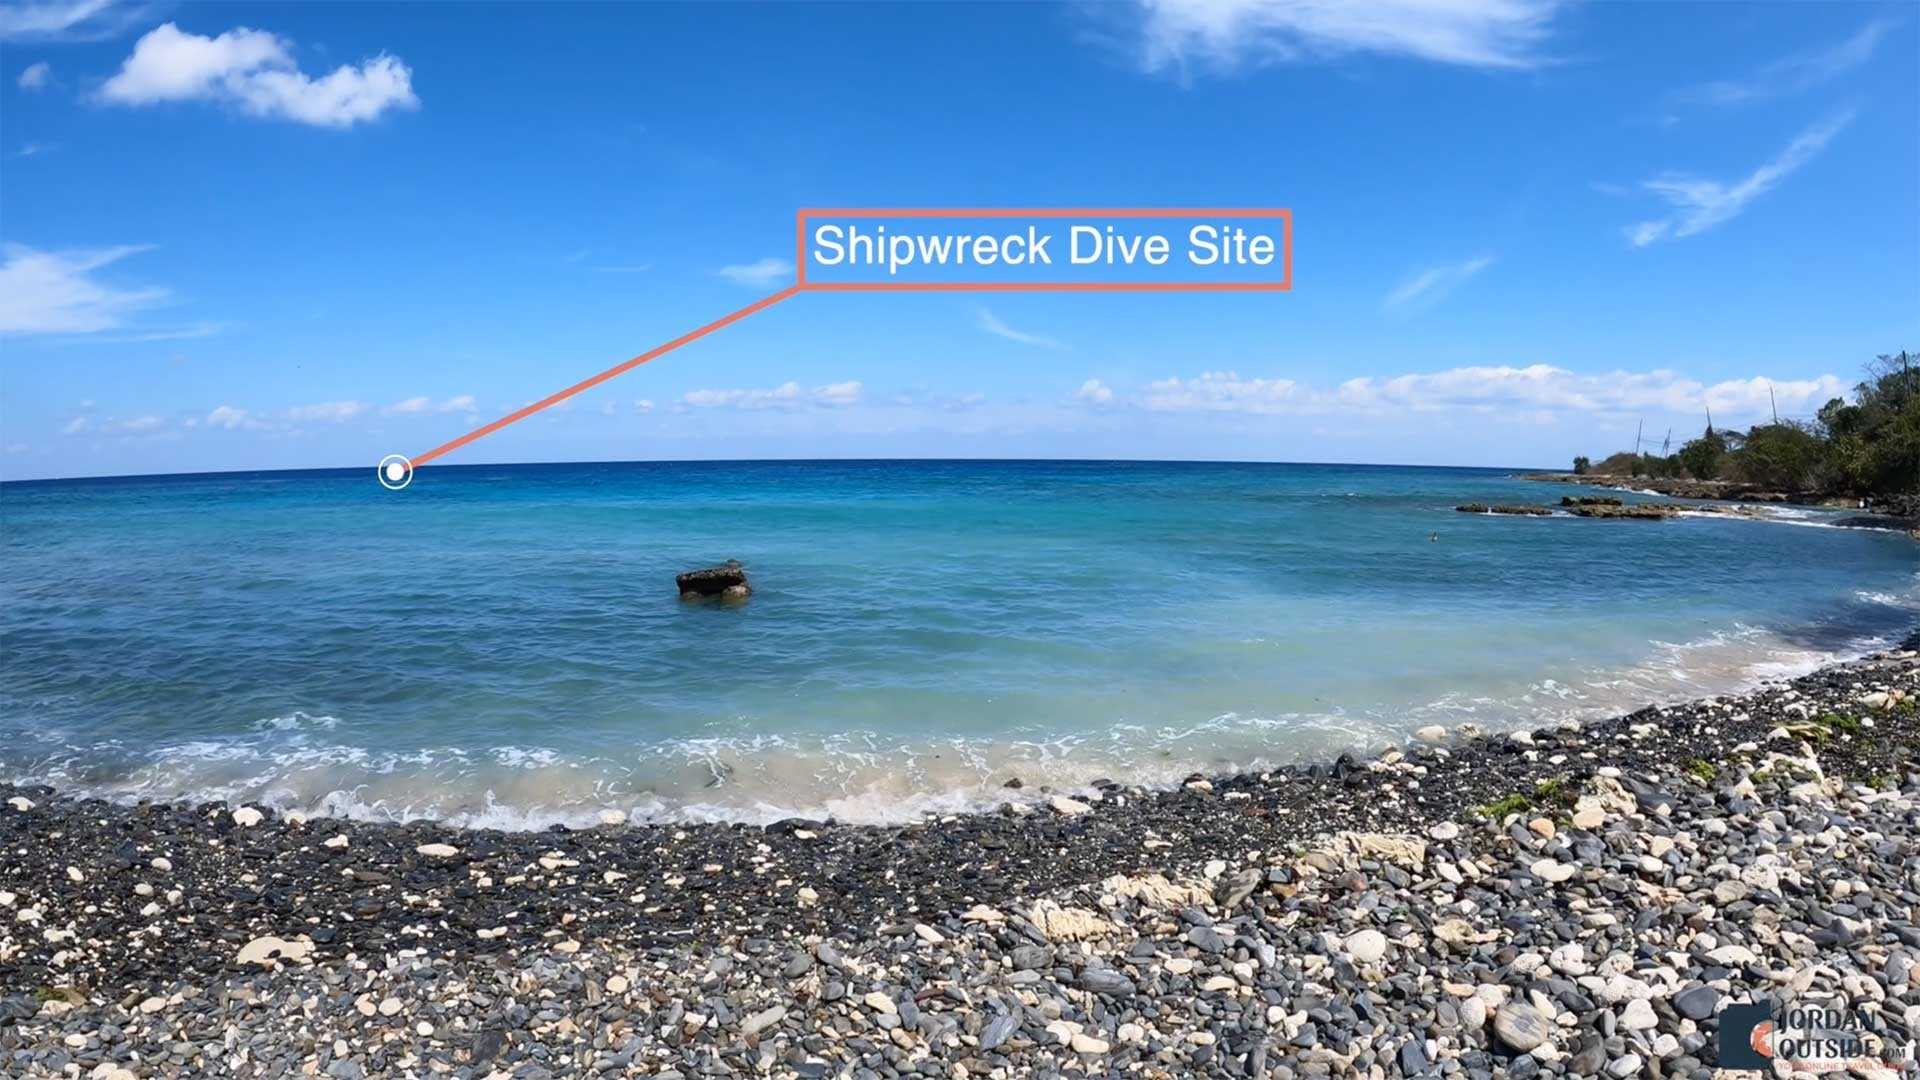 View of Shipwreck Dive Site at Butler Bay Beach, St. Croix